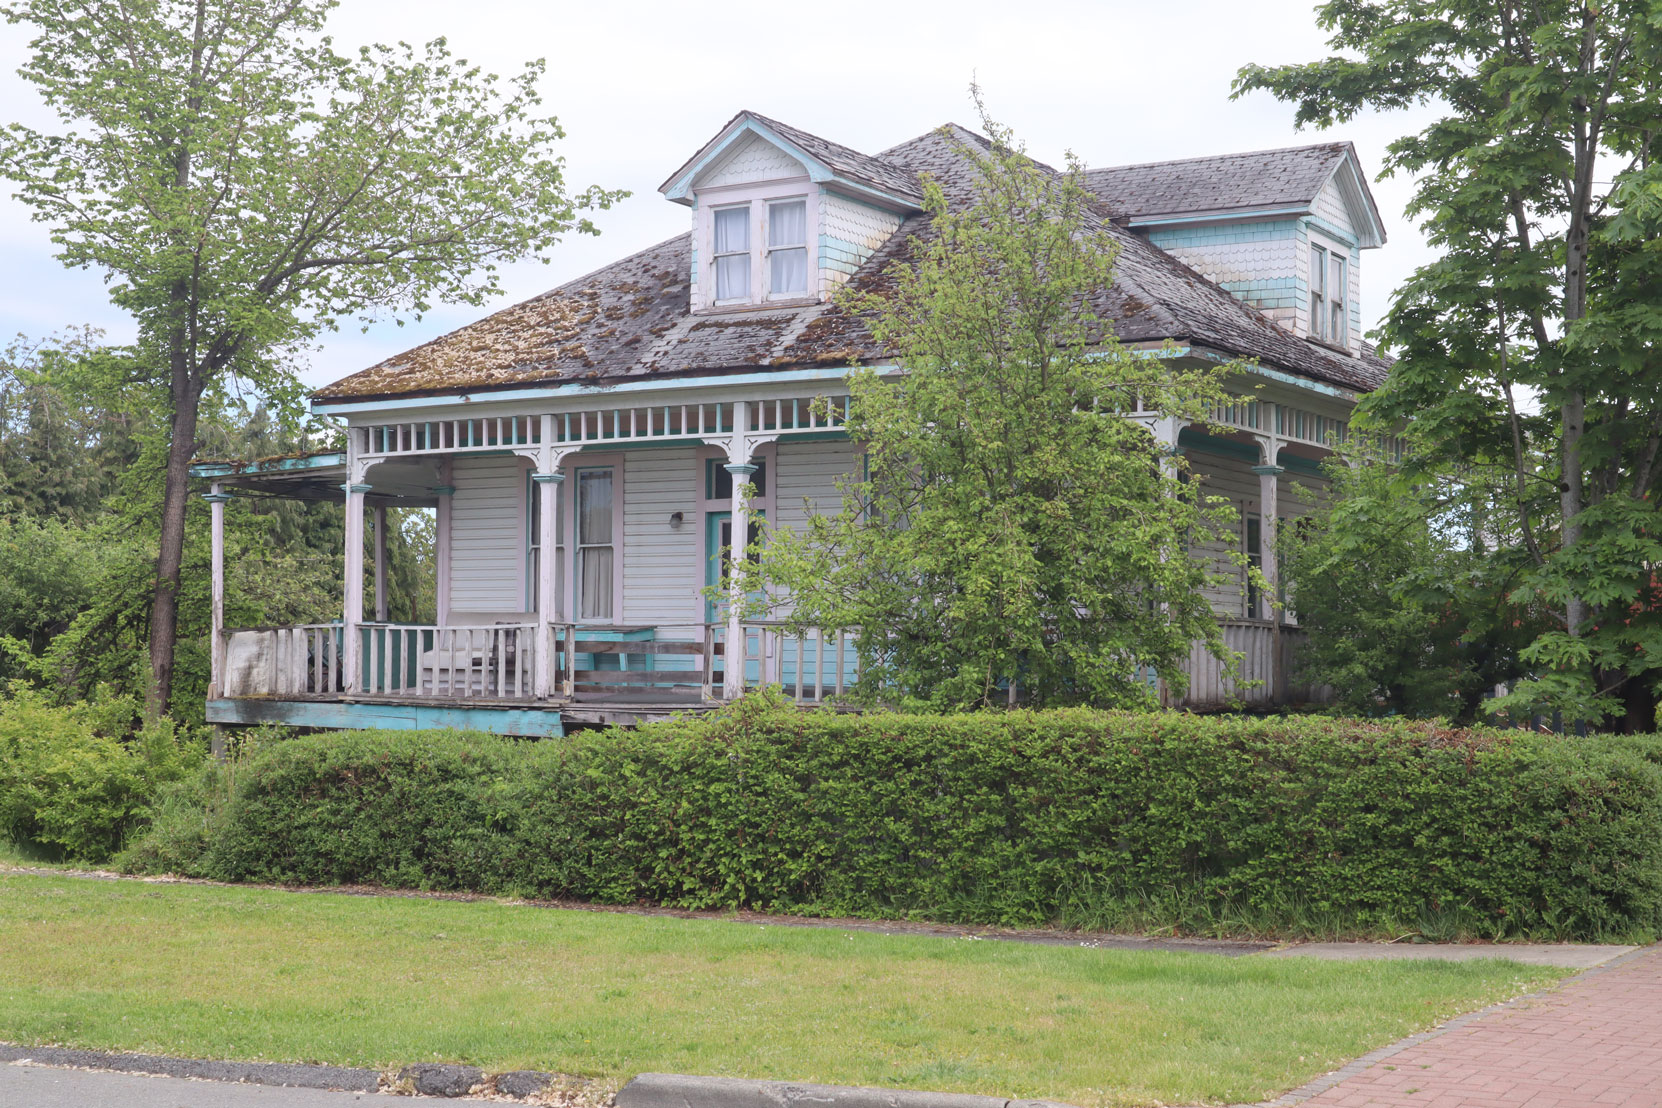 941 1st Avenue, near downtown Ladysmith, was built in 1905.